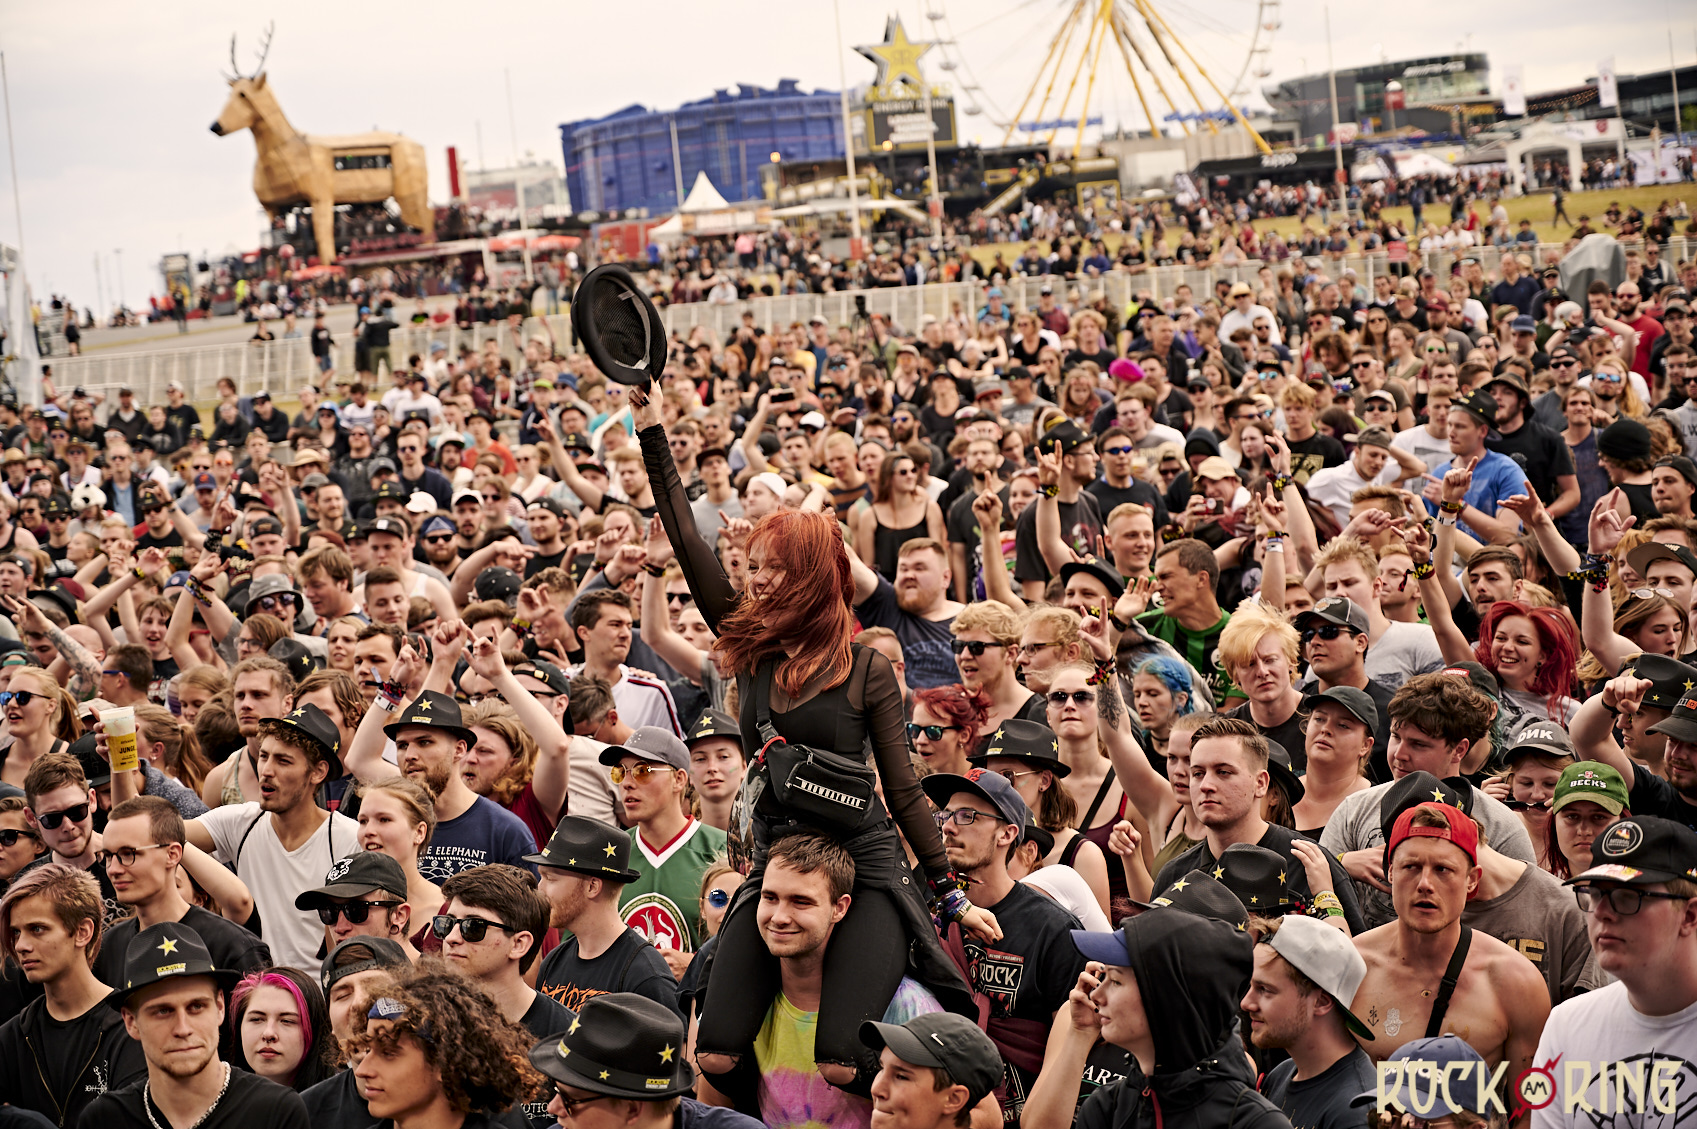 Absage Rock am Ring & Park 2021